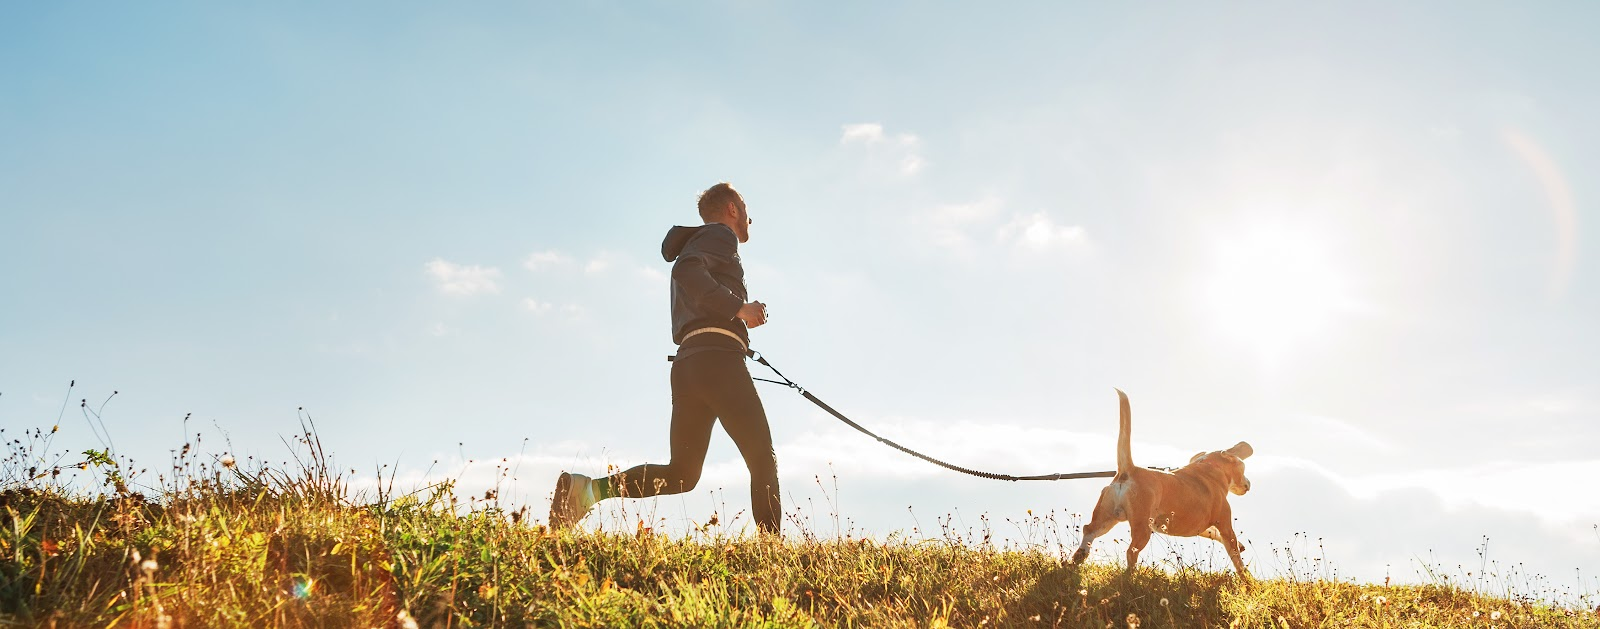 A man running with his dog in the sunlight